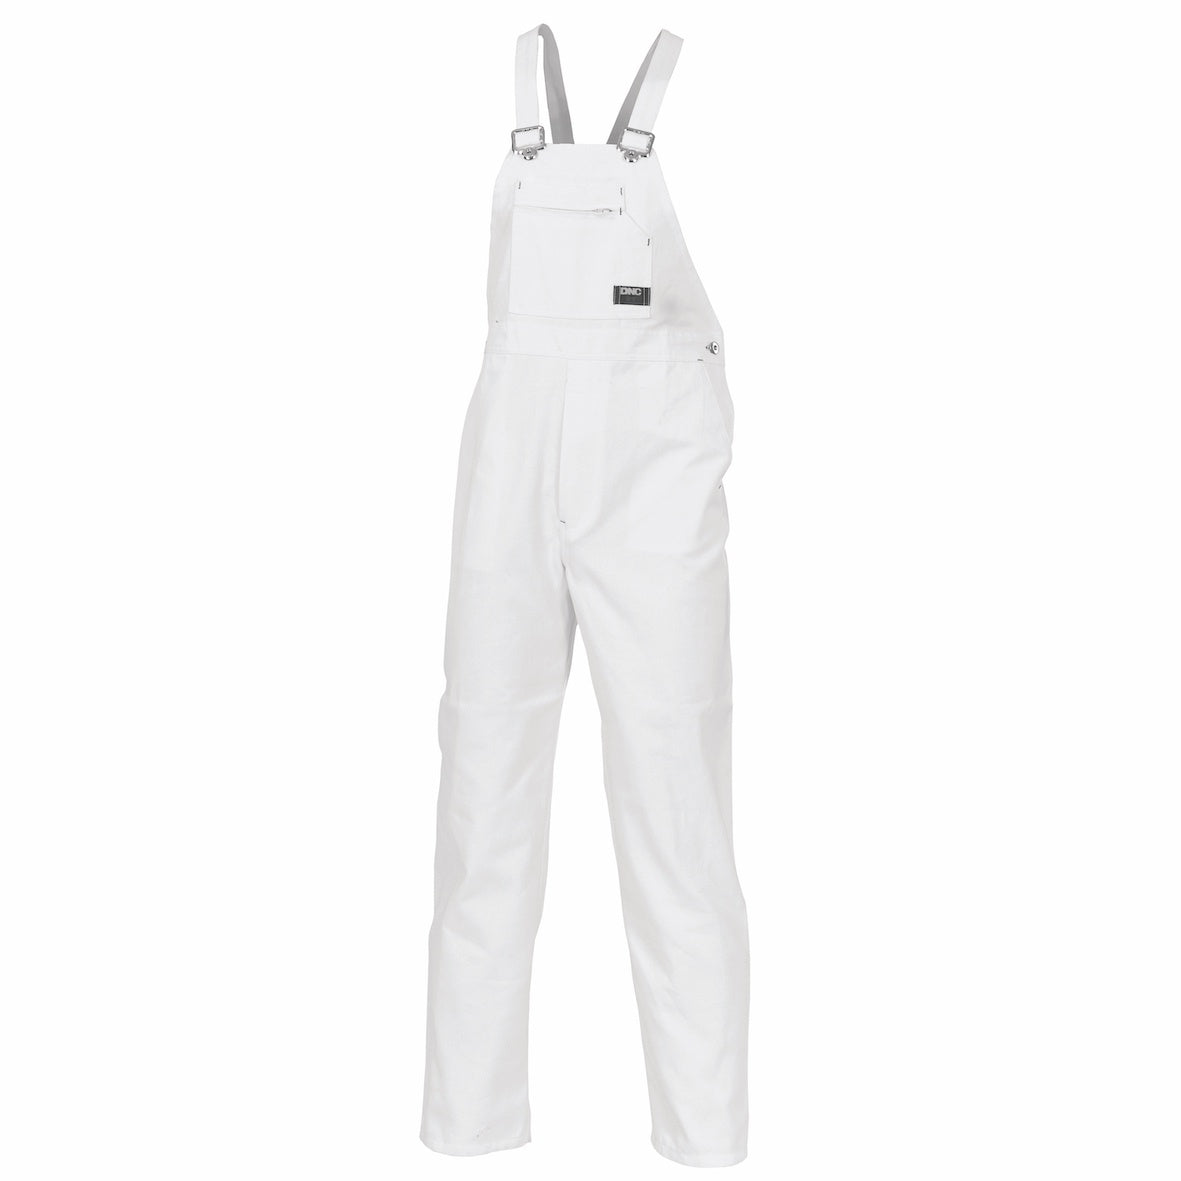 DNC - 3111 - Heavy Weight Cotton Drill Bib and Brace Overall